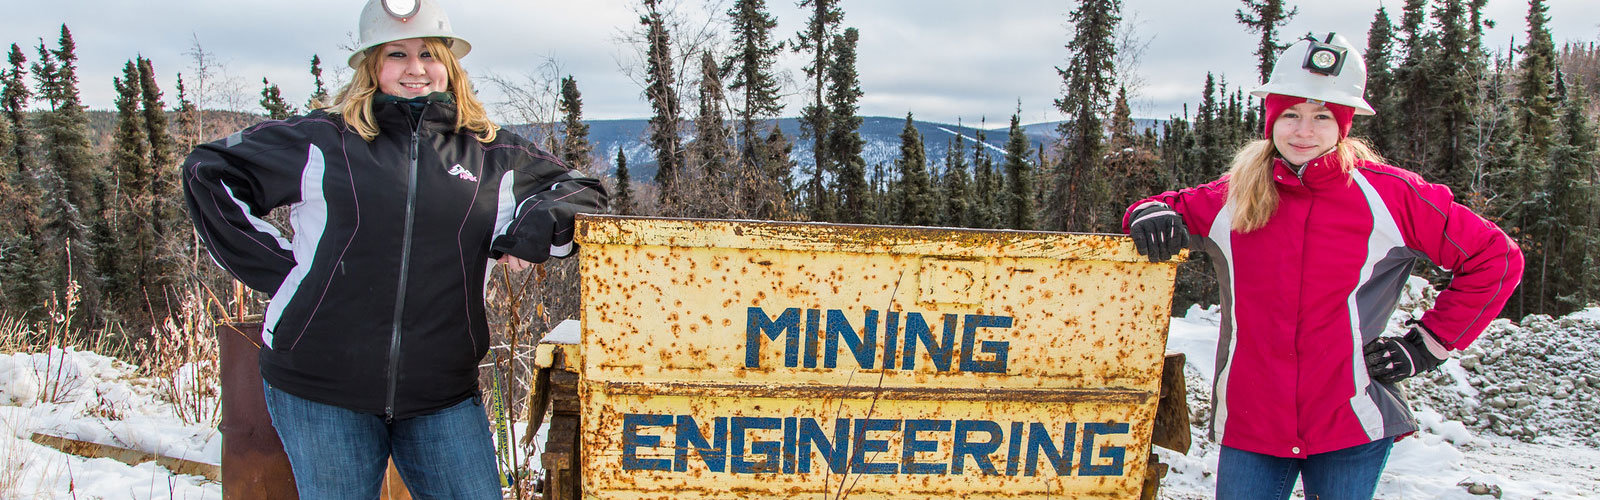 Students posing in front of miningb engineering sign